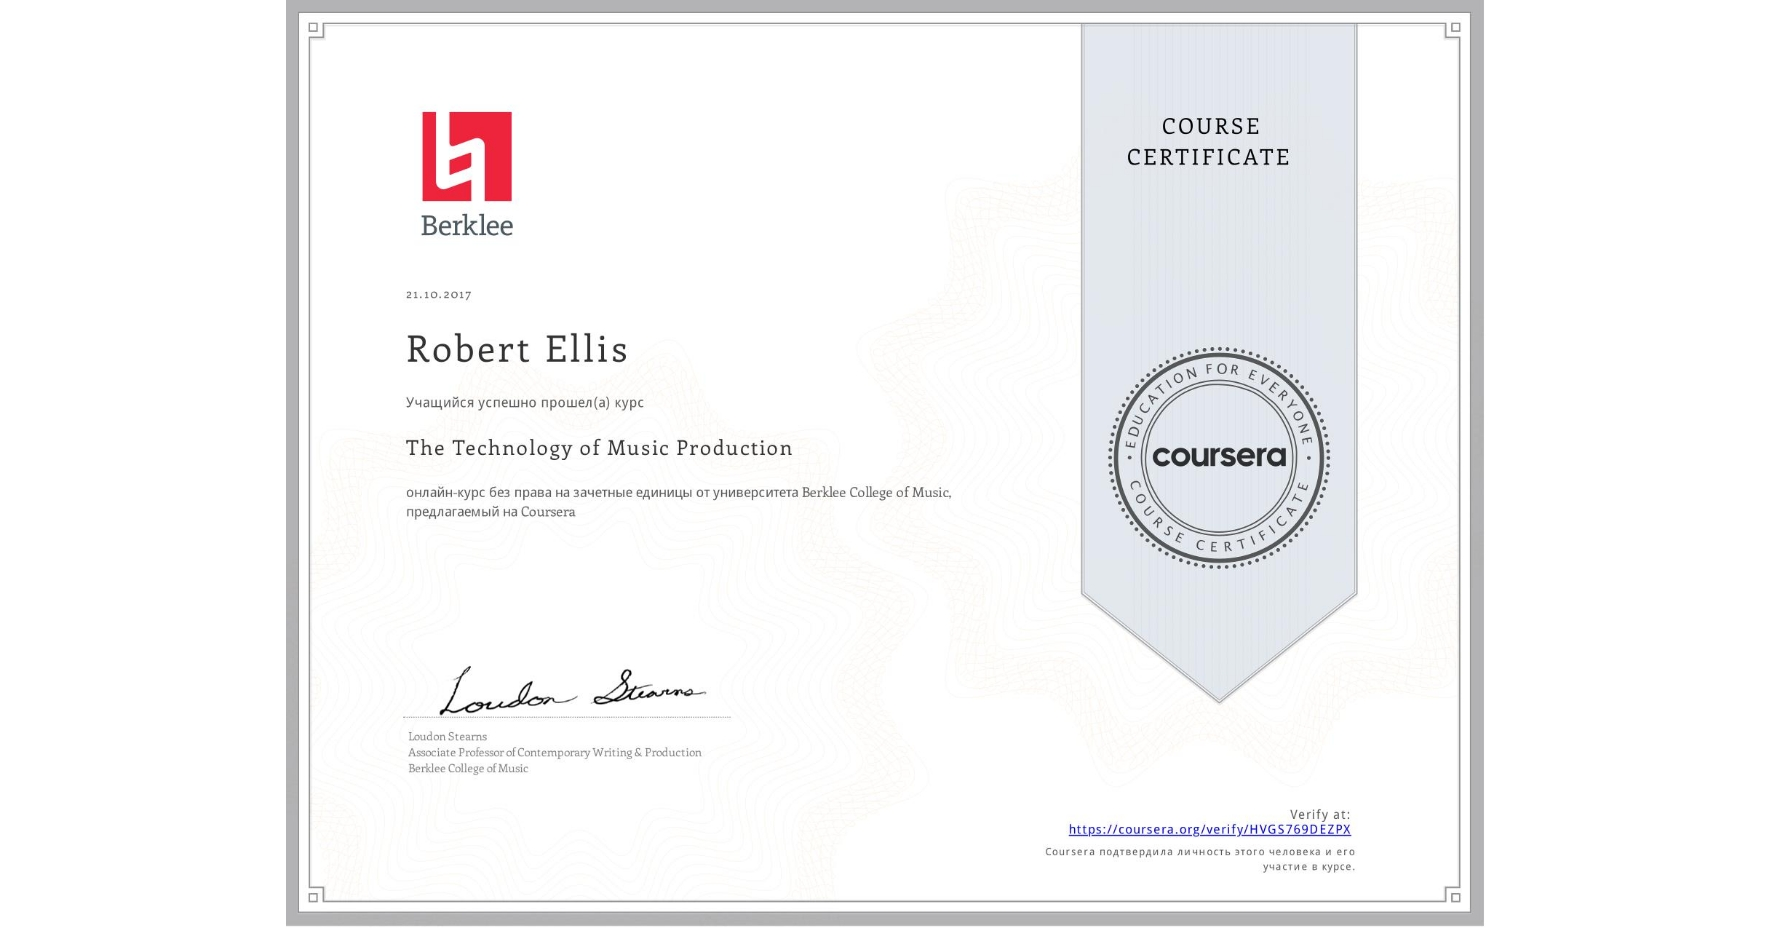 View certificate for Robert Ellis, The Technology of Music Production, an online non-credit course authorized by Berklee College of Music and offered through Coursera